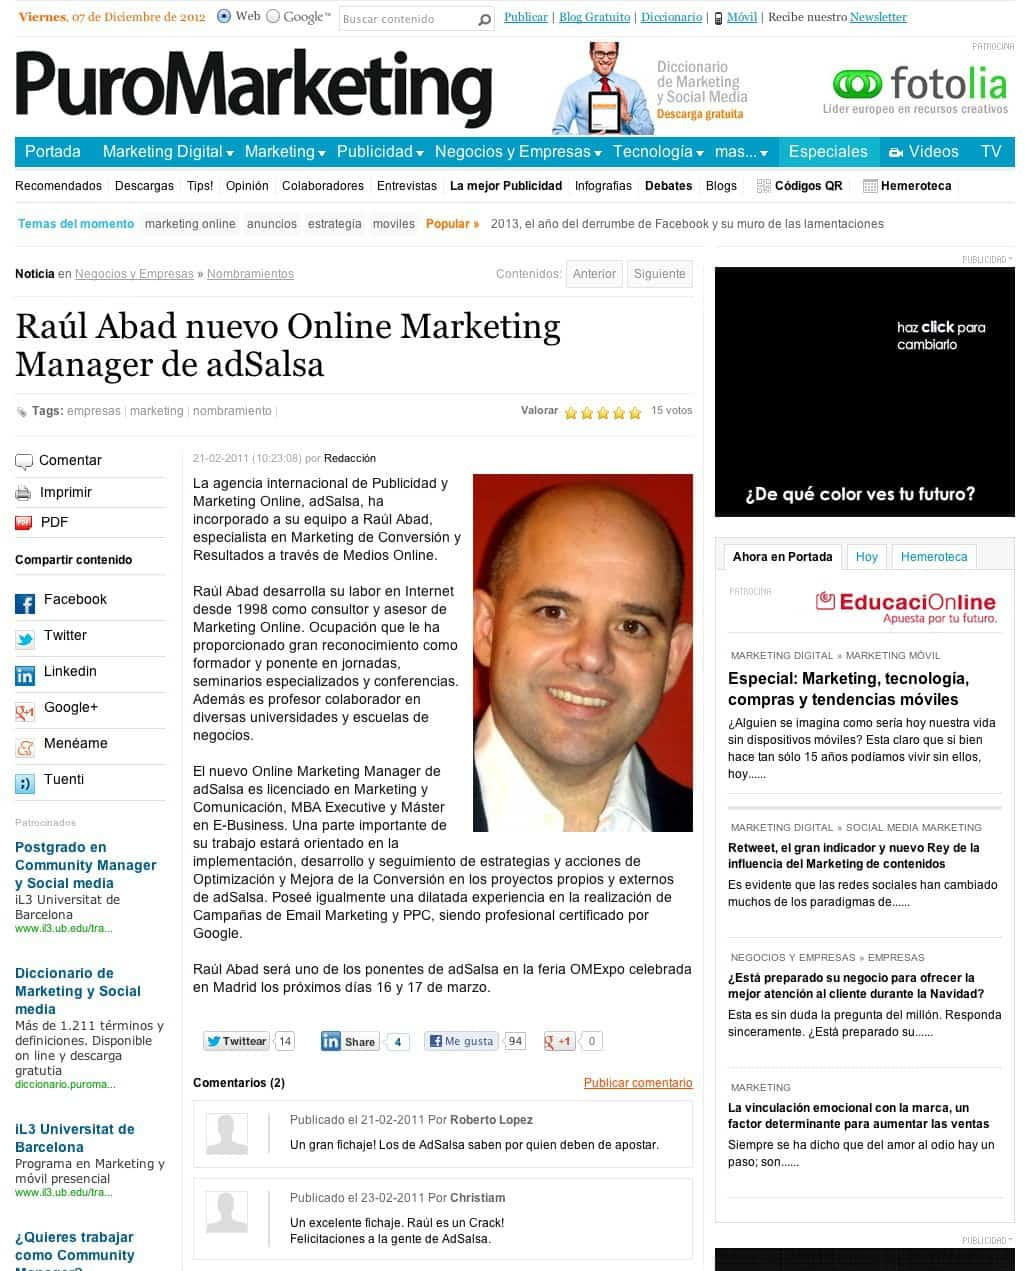 PuroMarketing.com Digital Marketing Manager de adSalsa